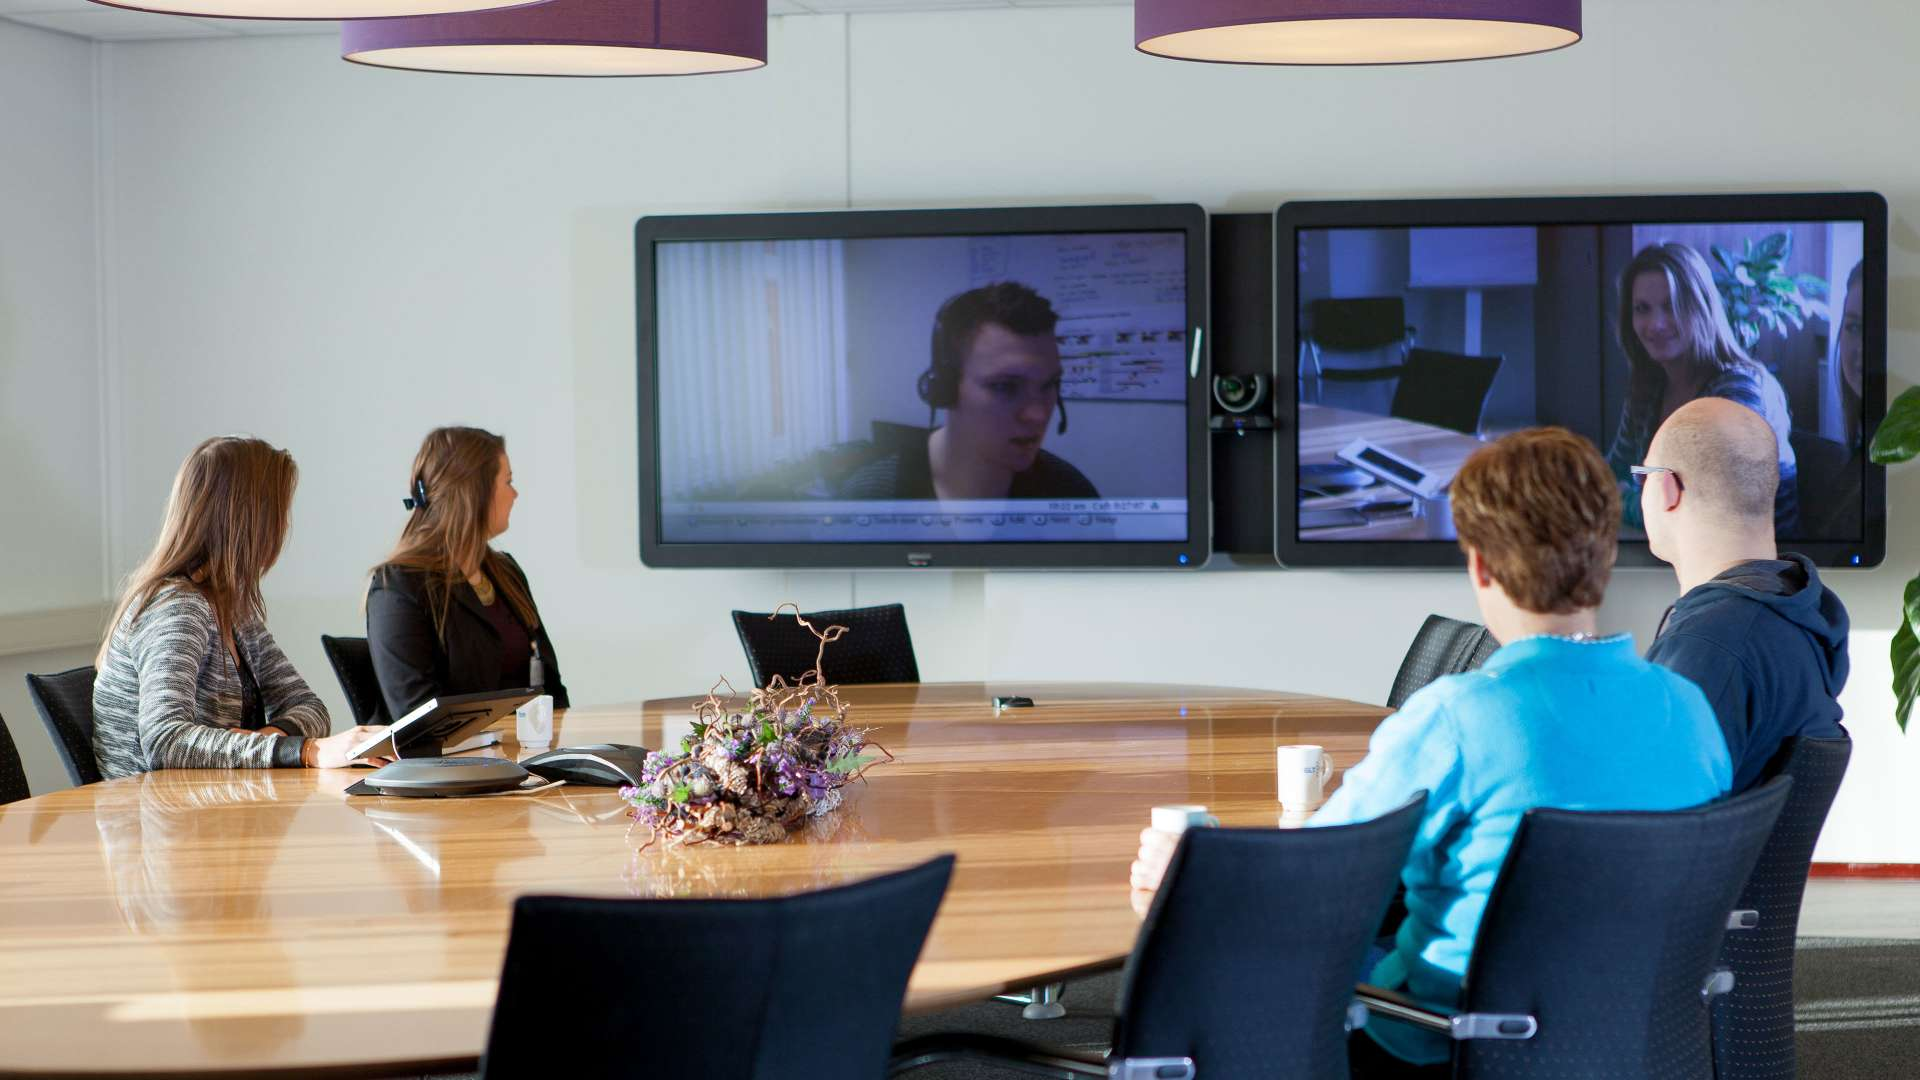 CTOUCH_Videoconferencing3840x2140